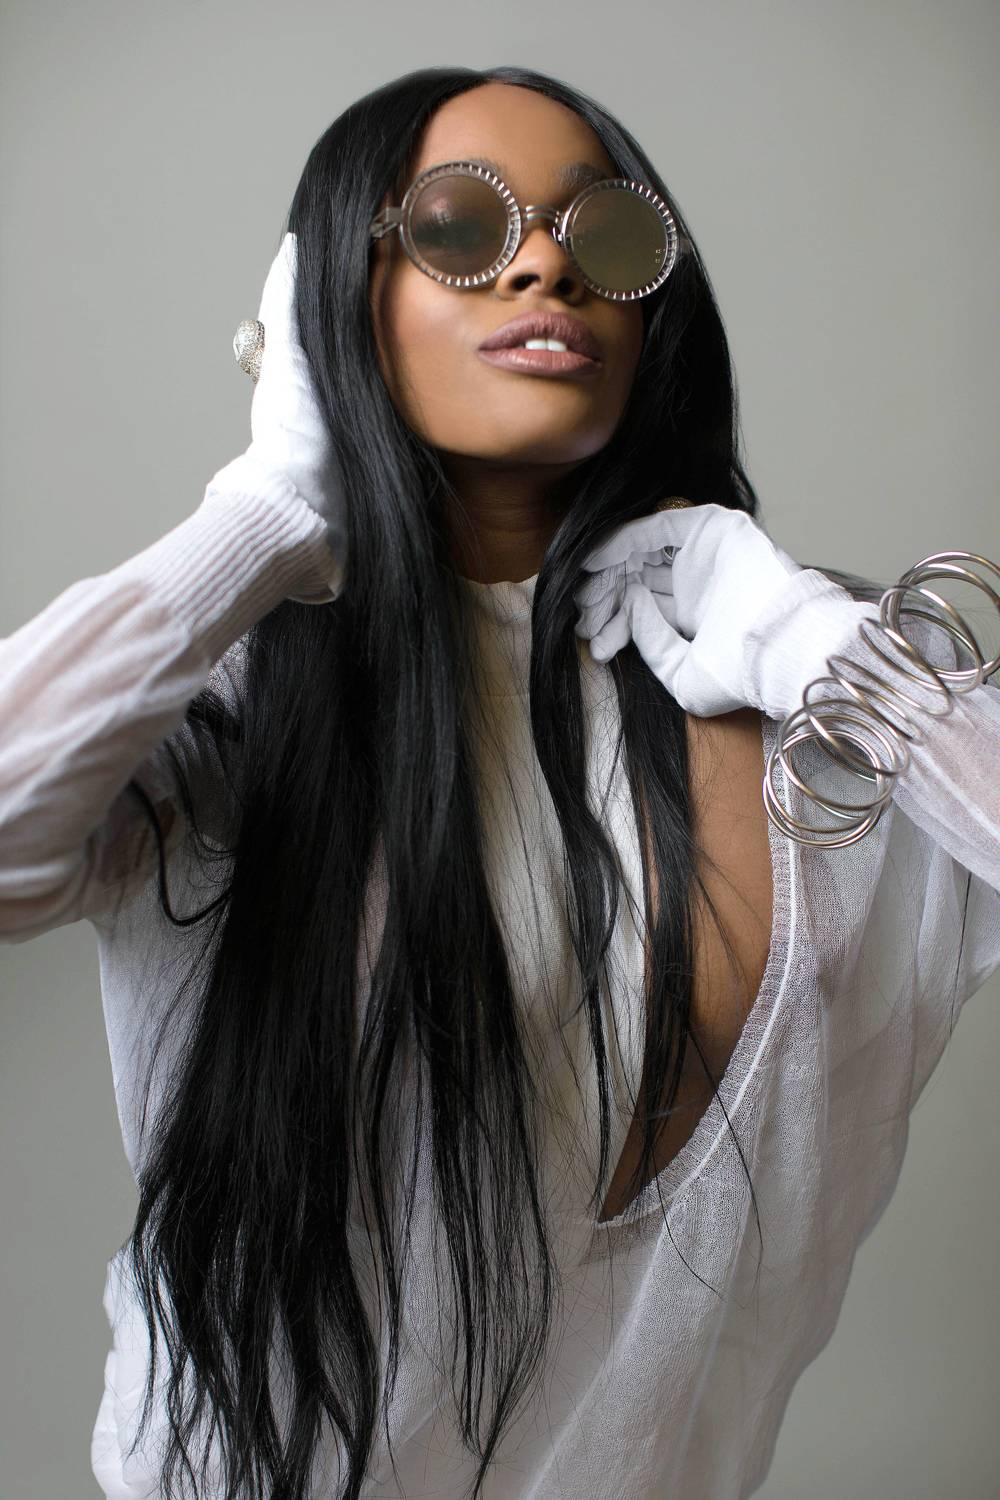 20160313_SF_AzealiaBanks_05_466rev2.jpg